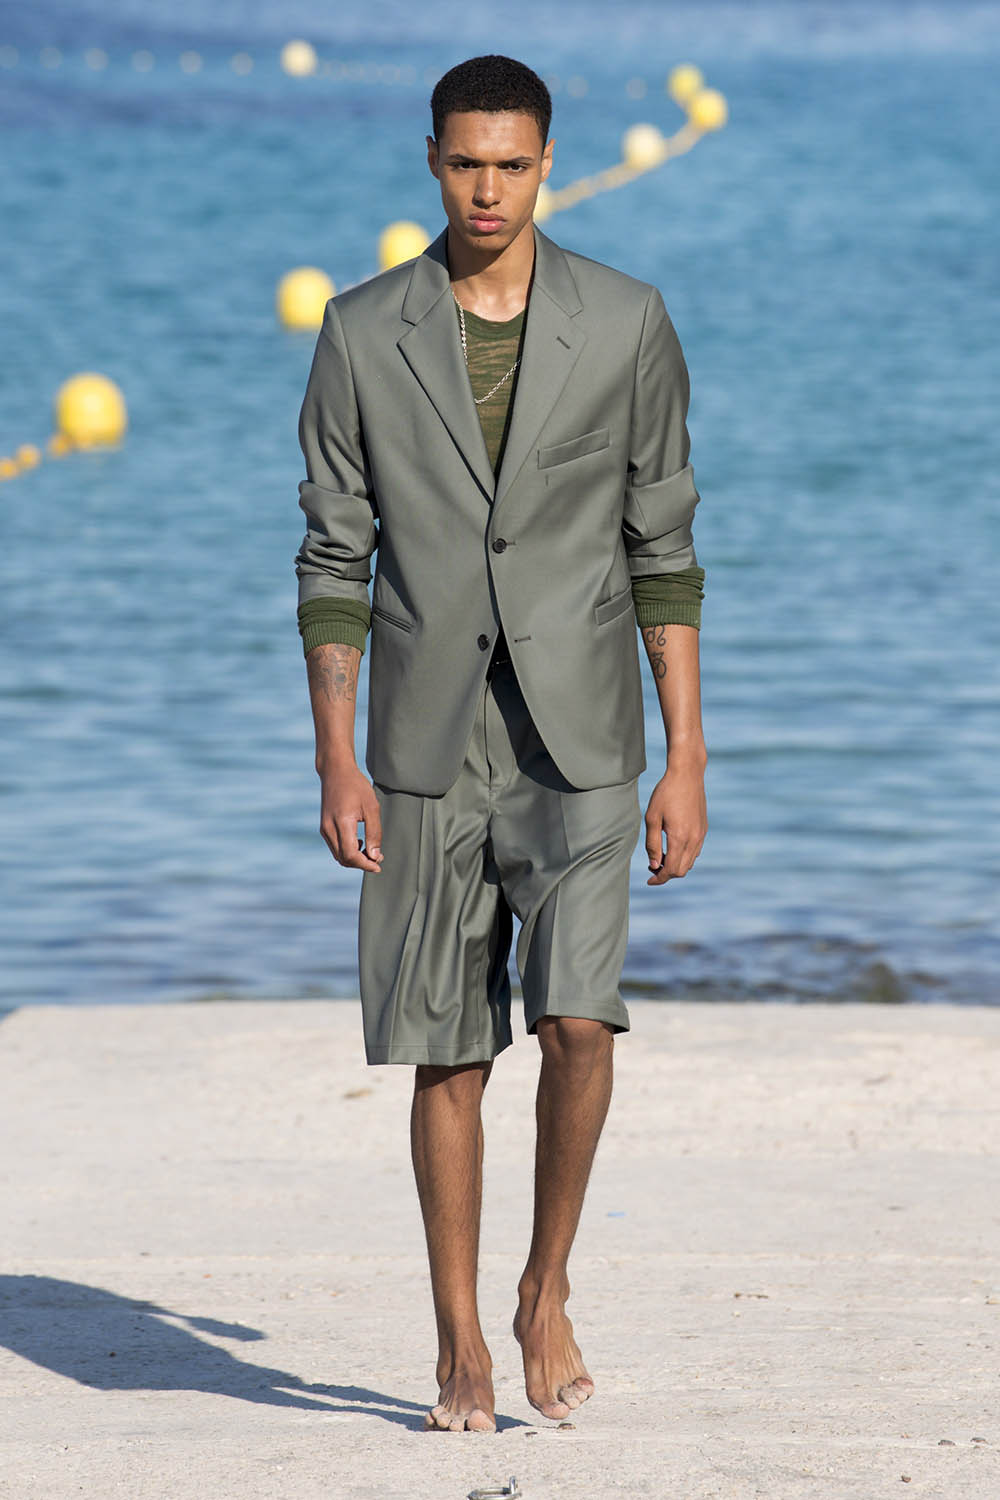 Jacquemus Paris Fashion Week Men's SS19 - Sagaboi - Look 24